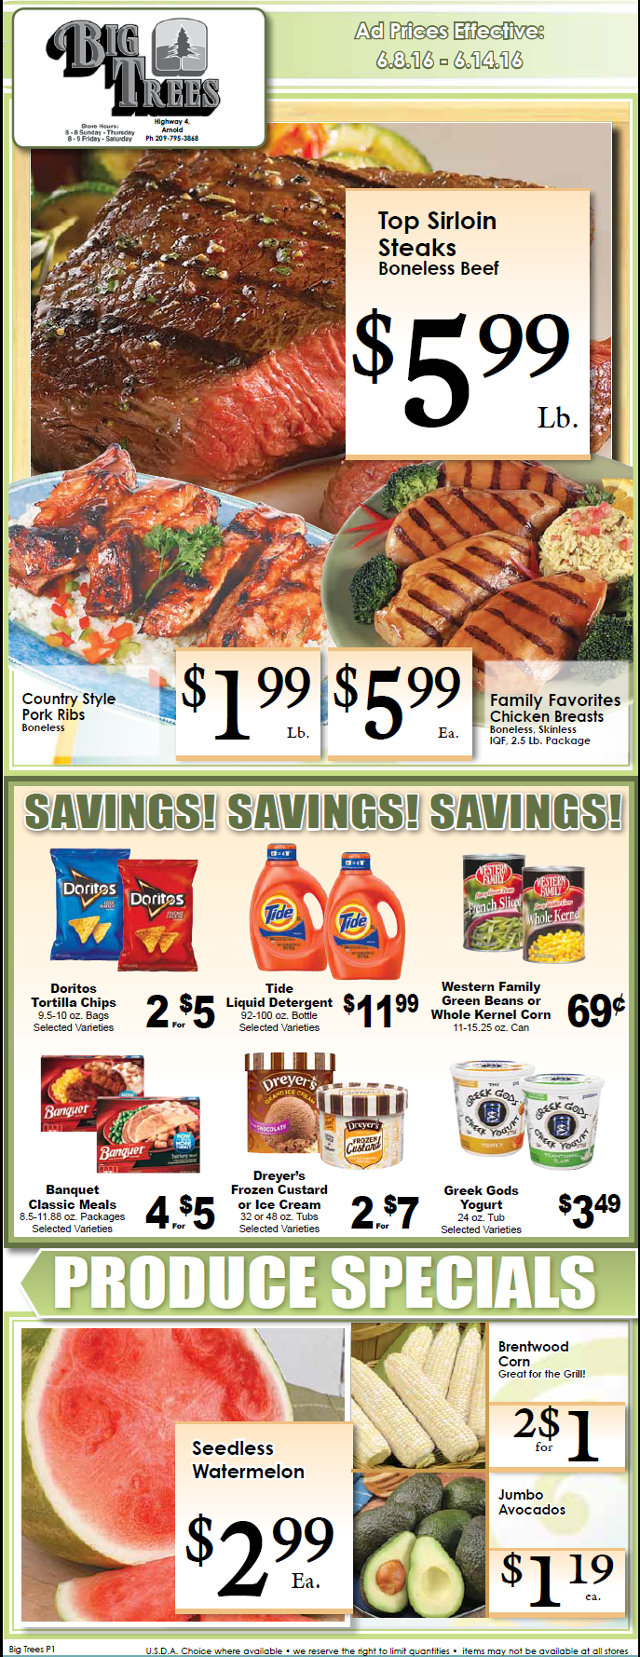 Big Trees Market Weekly Ad & Specials Through June 14th